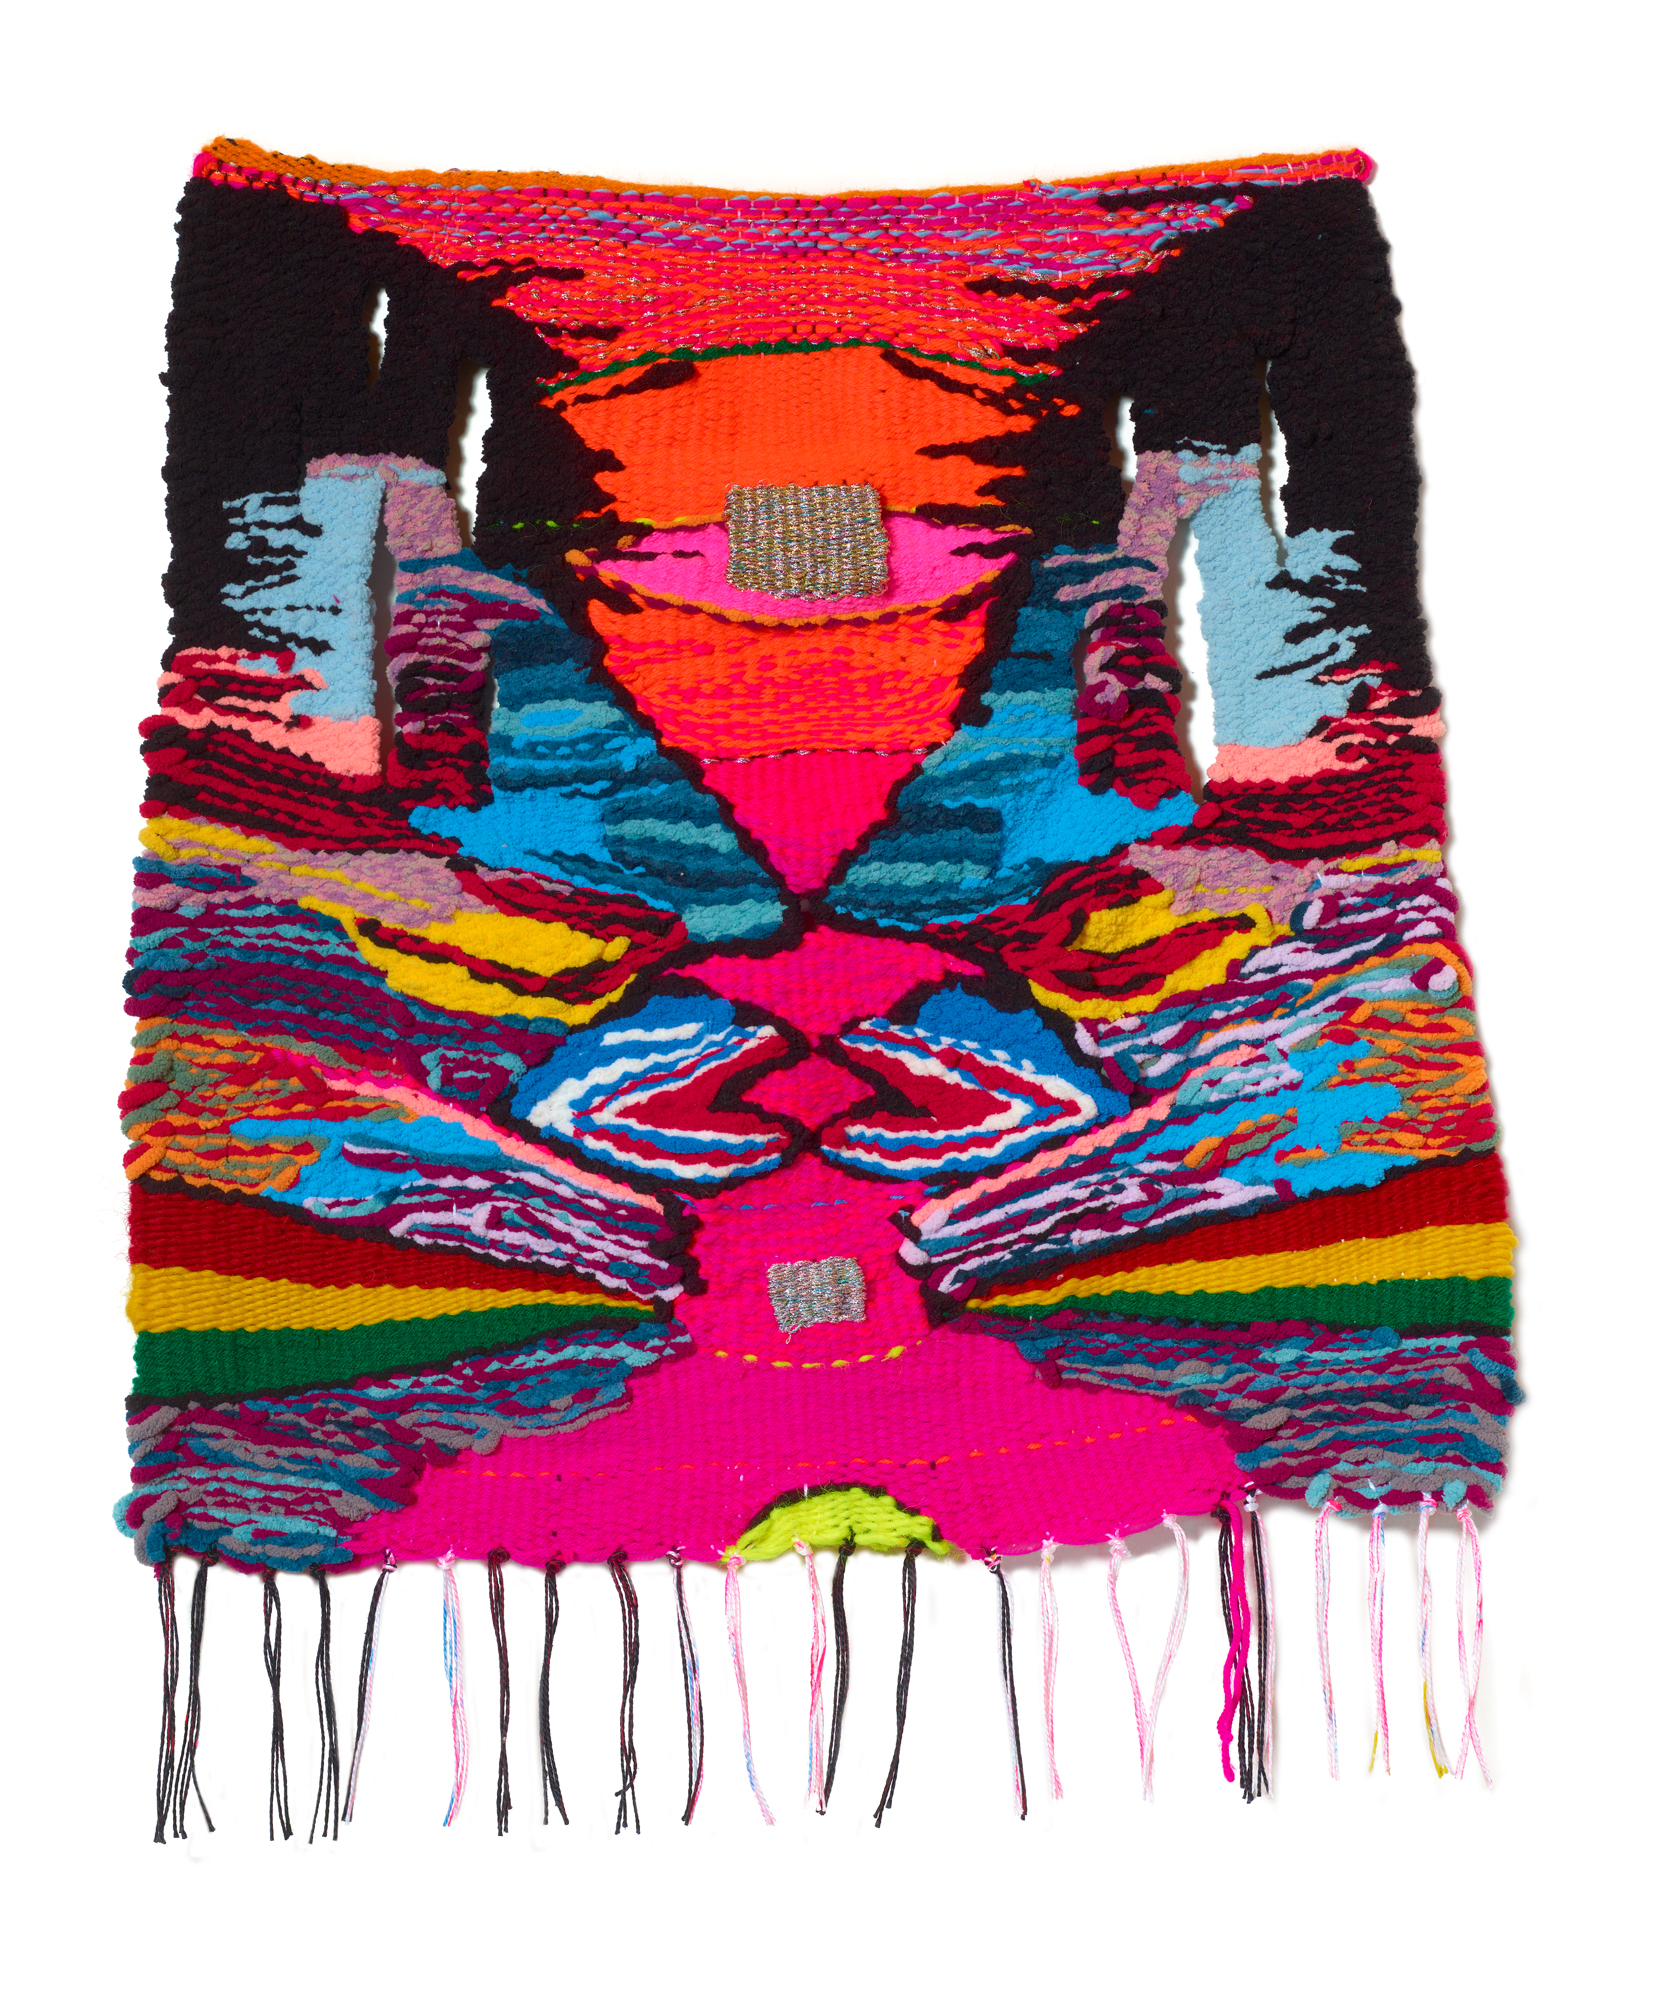 Angry Joy, 2019, 26 x 29 in, wool, cotton, acrylic, metallic, polyester fibers